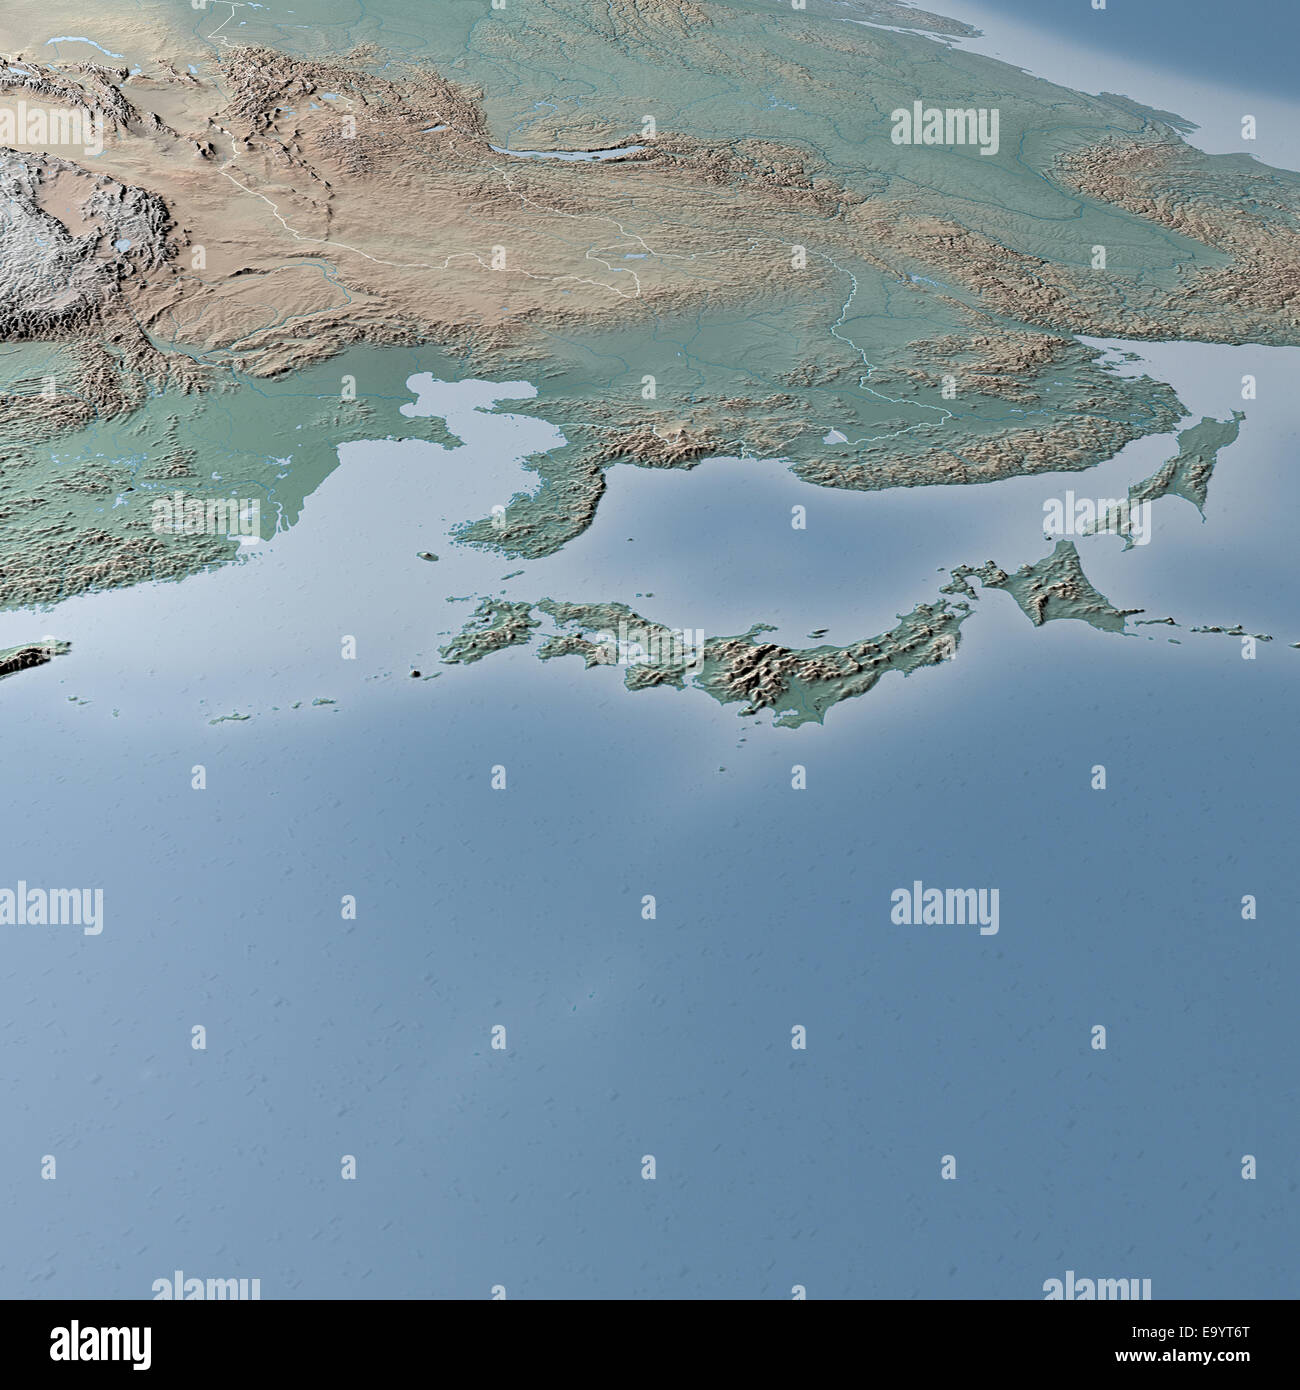 World map physical map asia japan korea china and russia stock world map physical map asia japan korea china and russia gumiabroncs Gallery